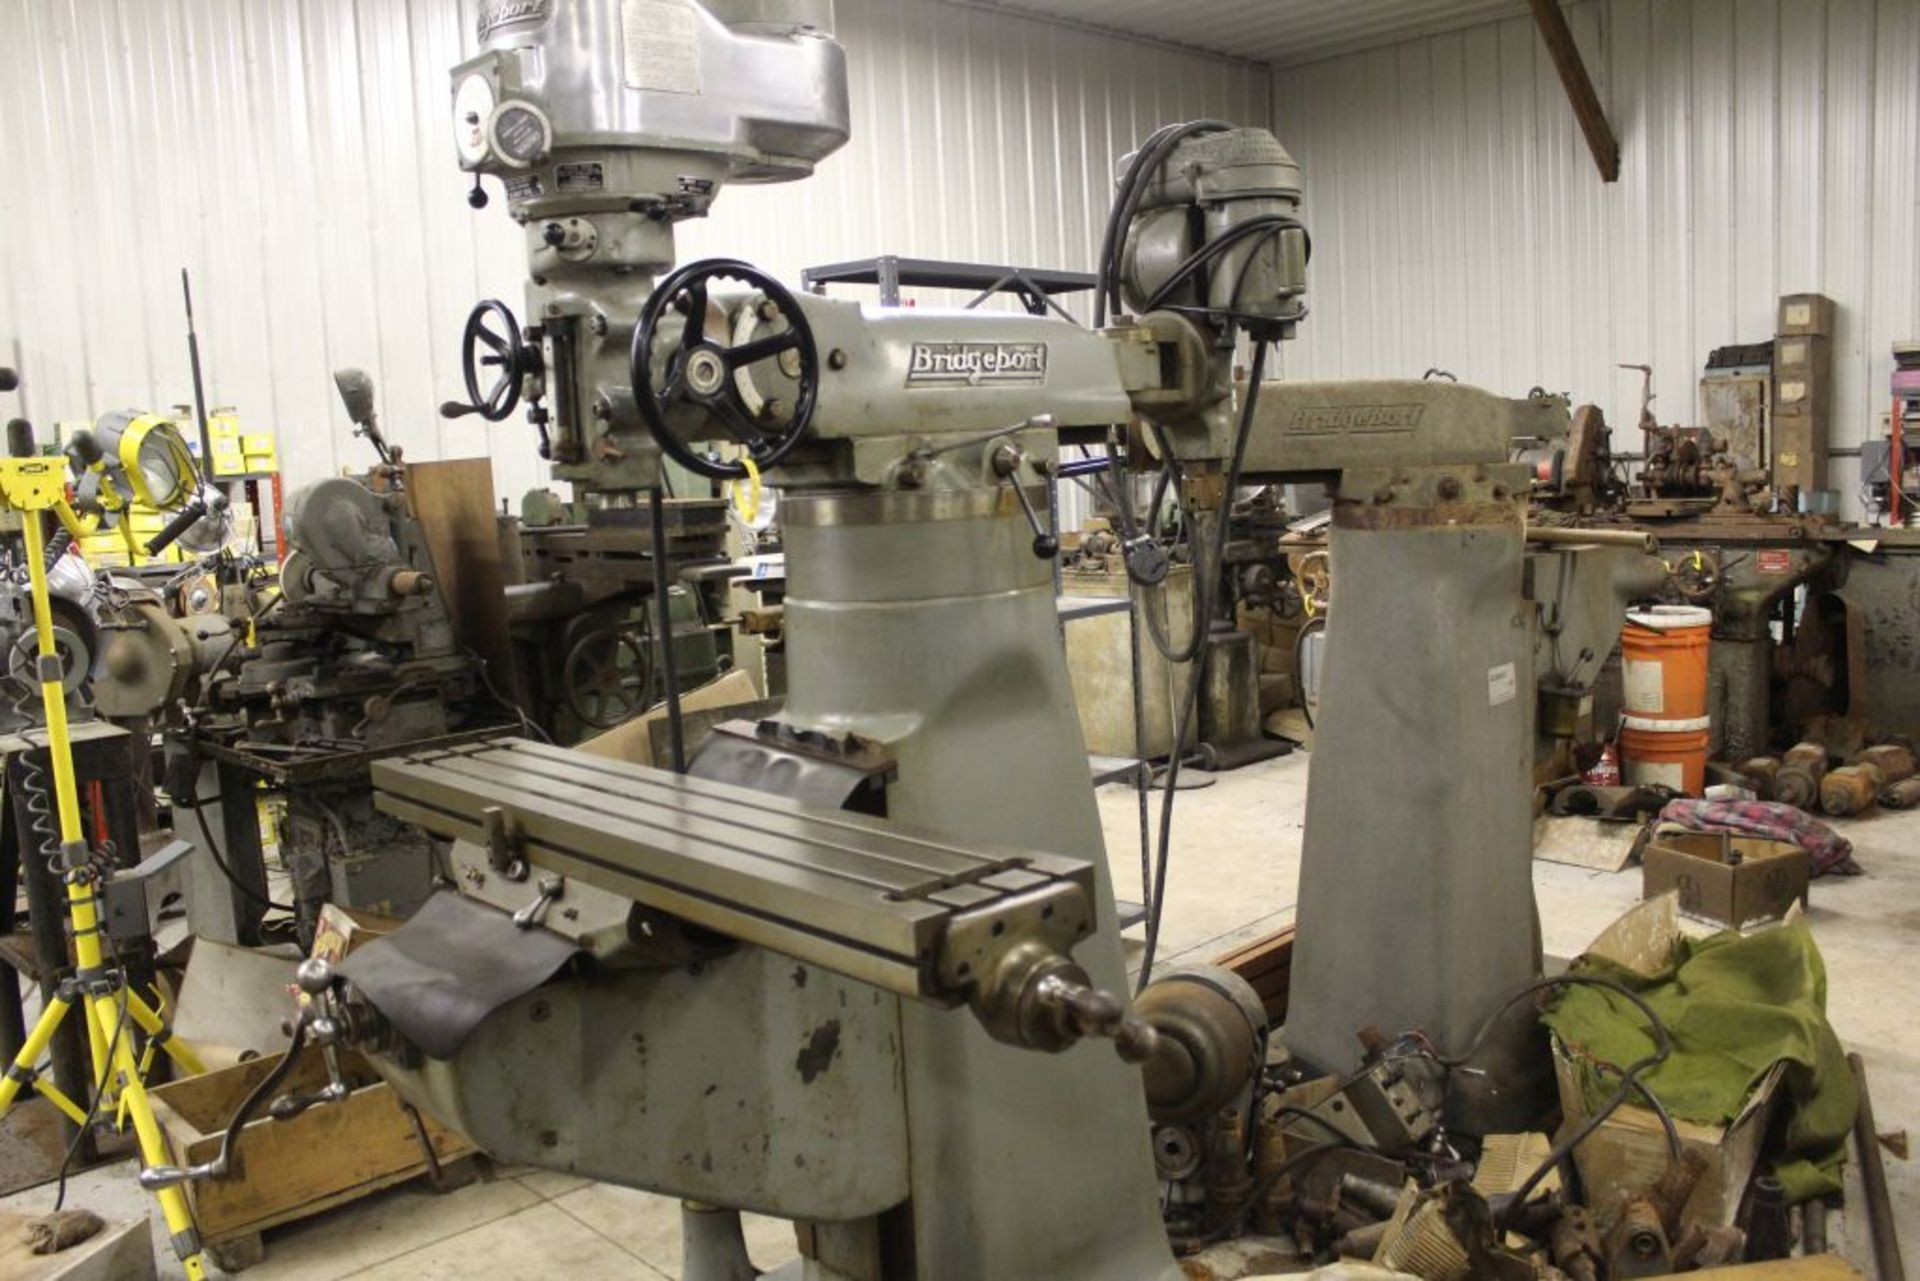 """Bridgeport mill, model 12-BR, sn 83978, 9"""" x 48"""" bed, manual (not down power), shaping attachment. - Image 3 of 15"""